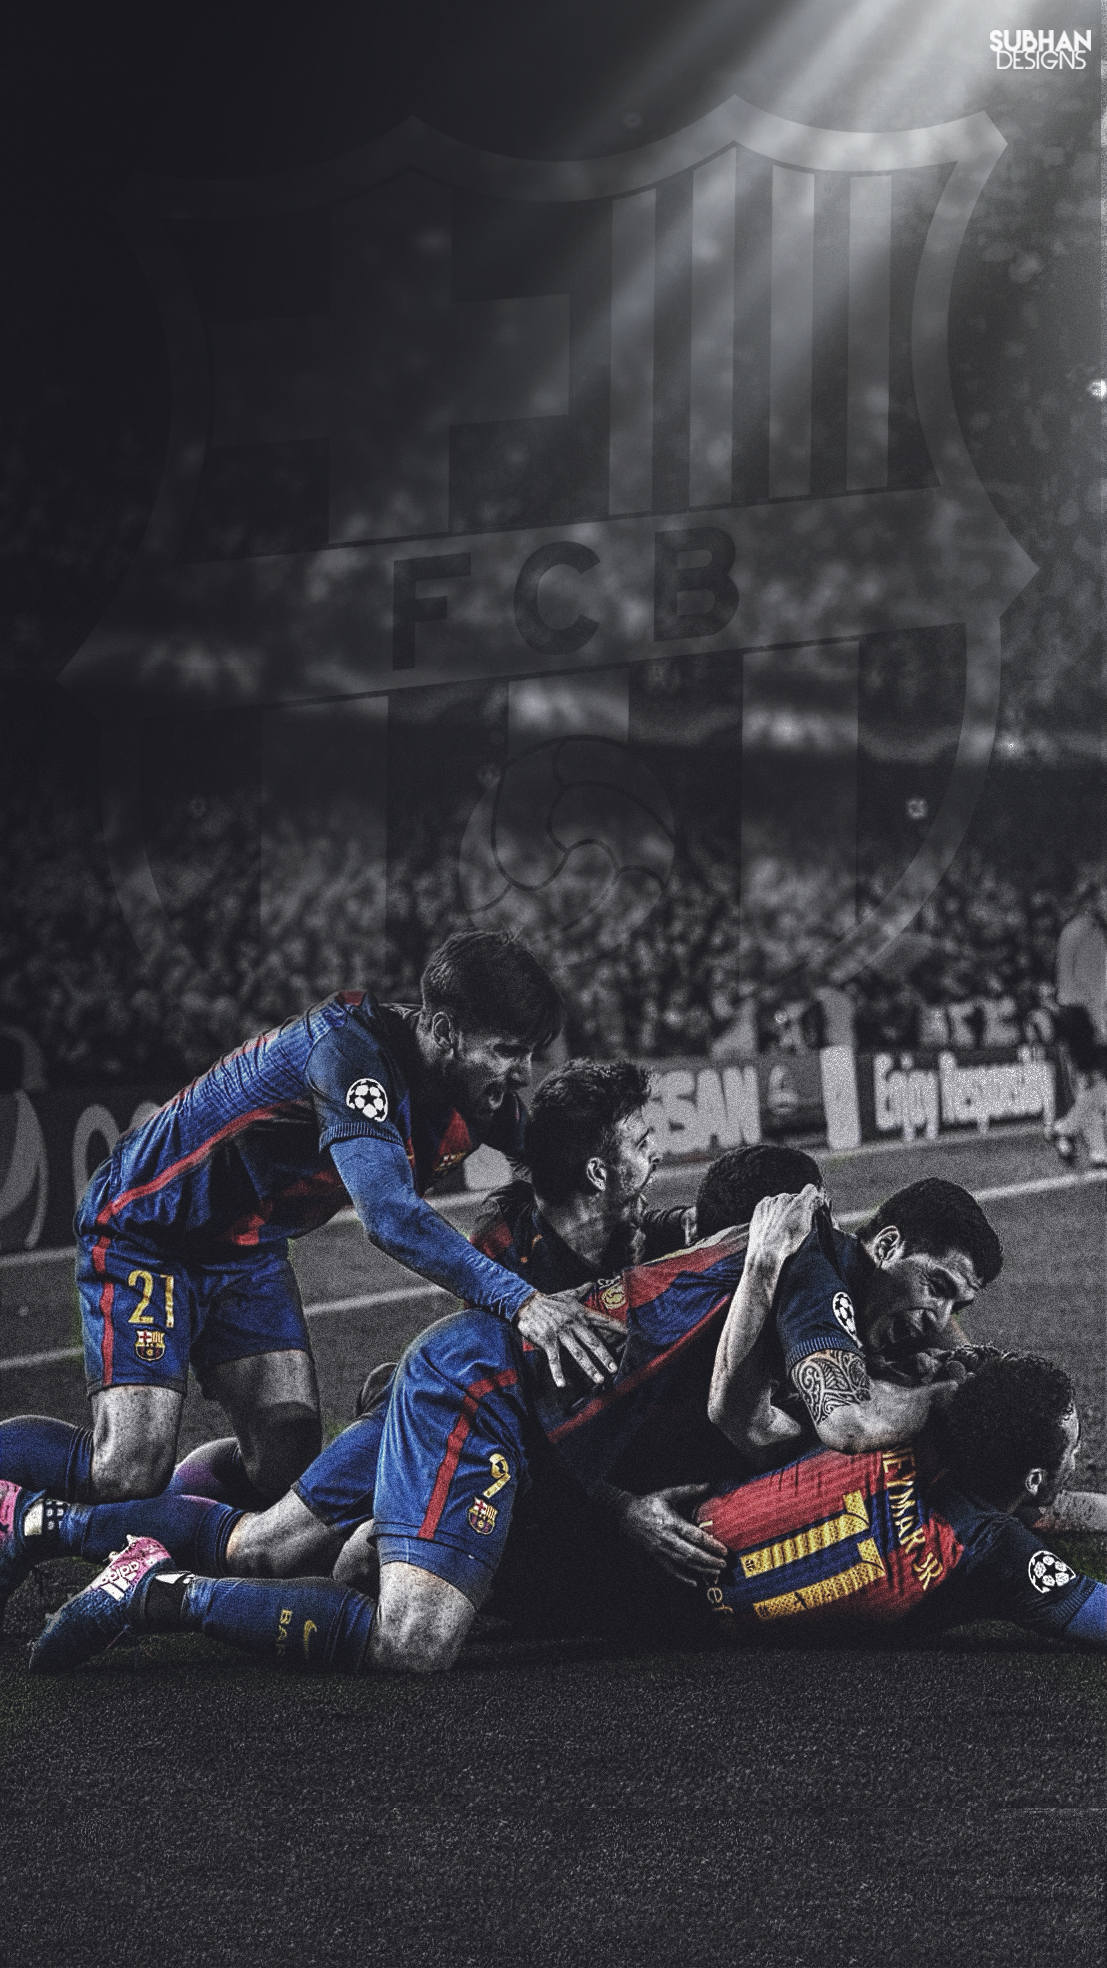 fc barcelona vs psg hd wallpaper 2017subhan22 on deviantart